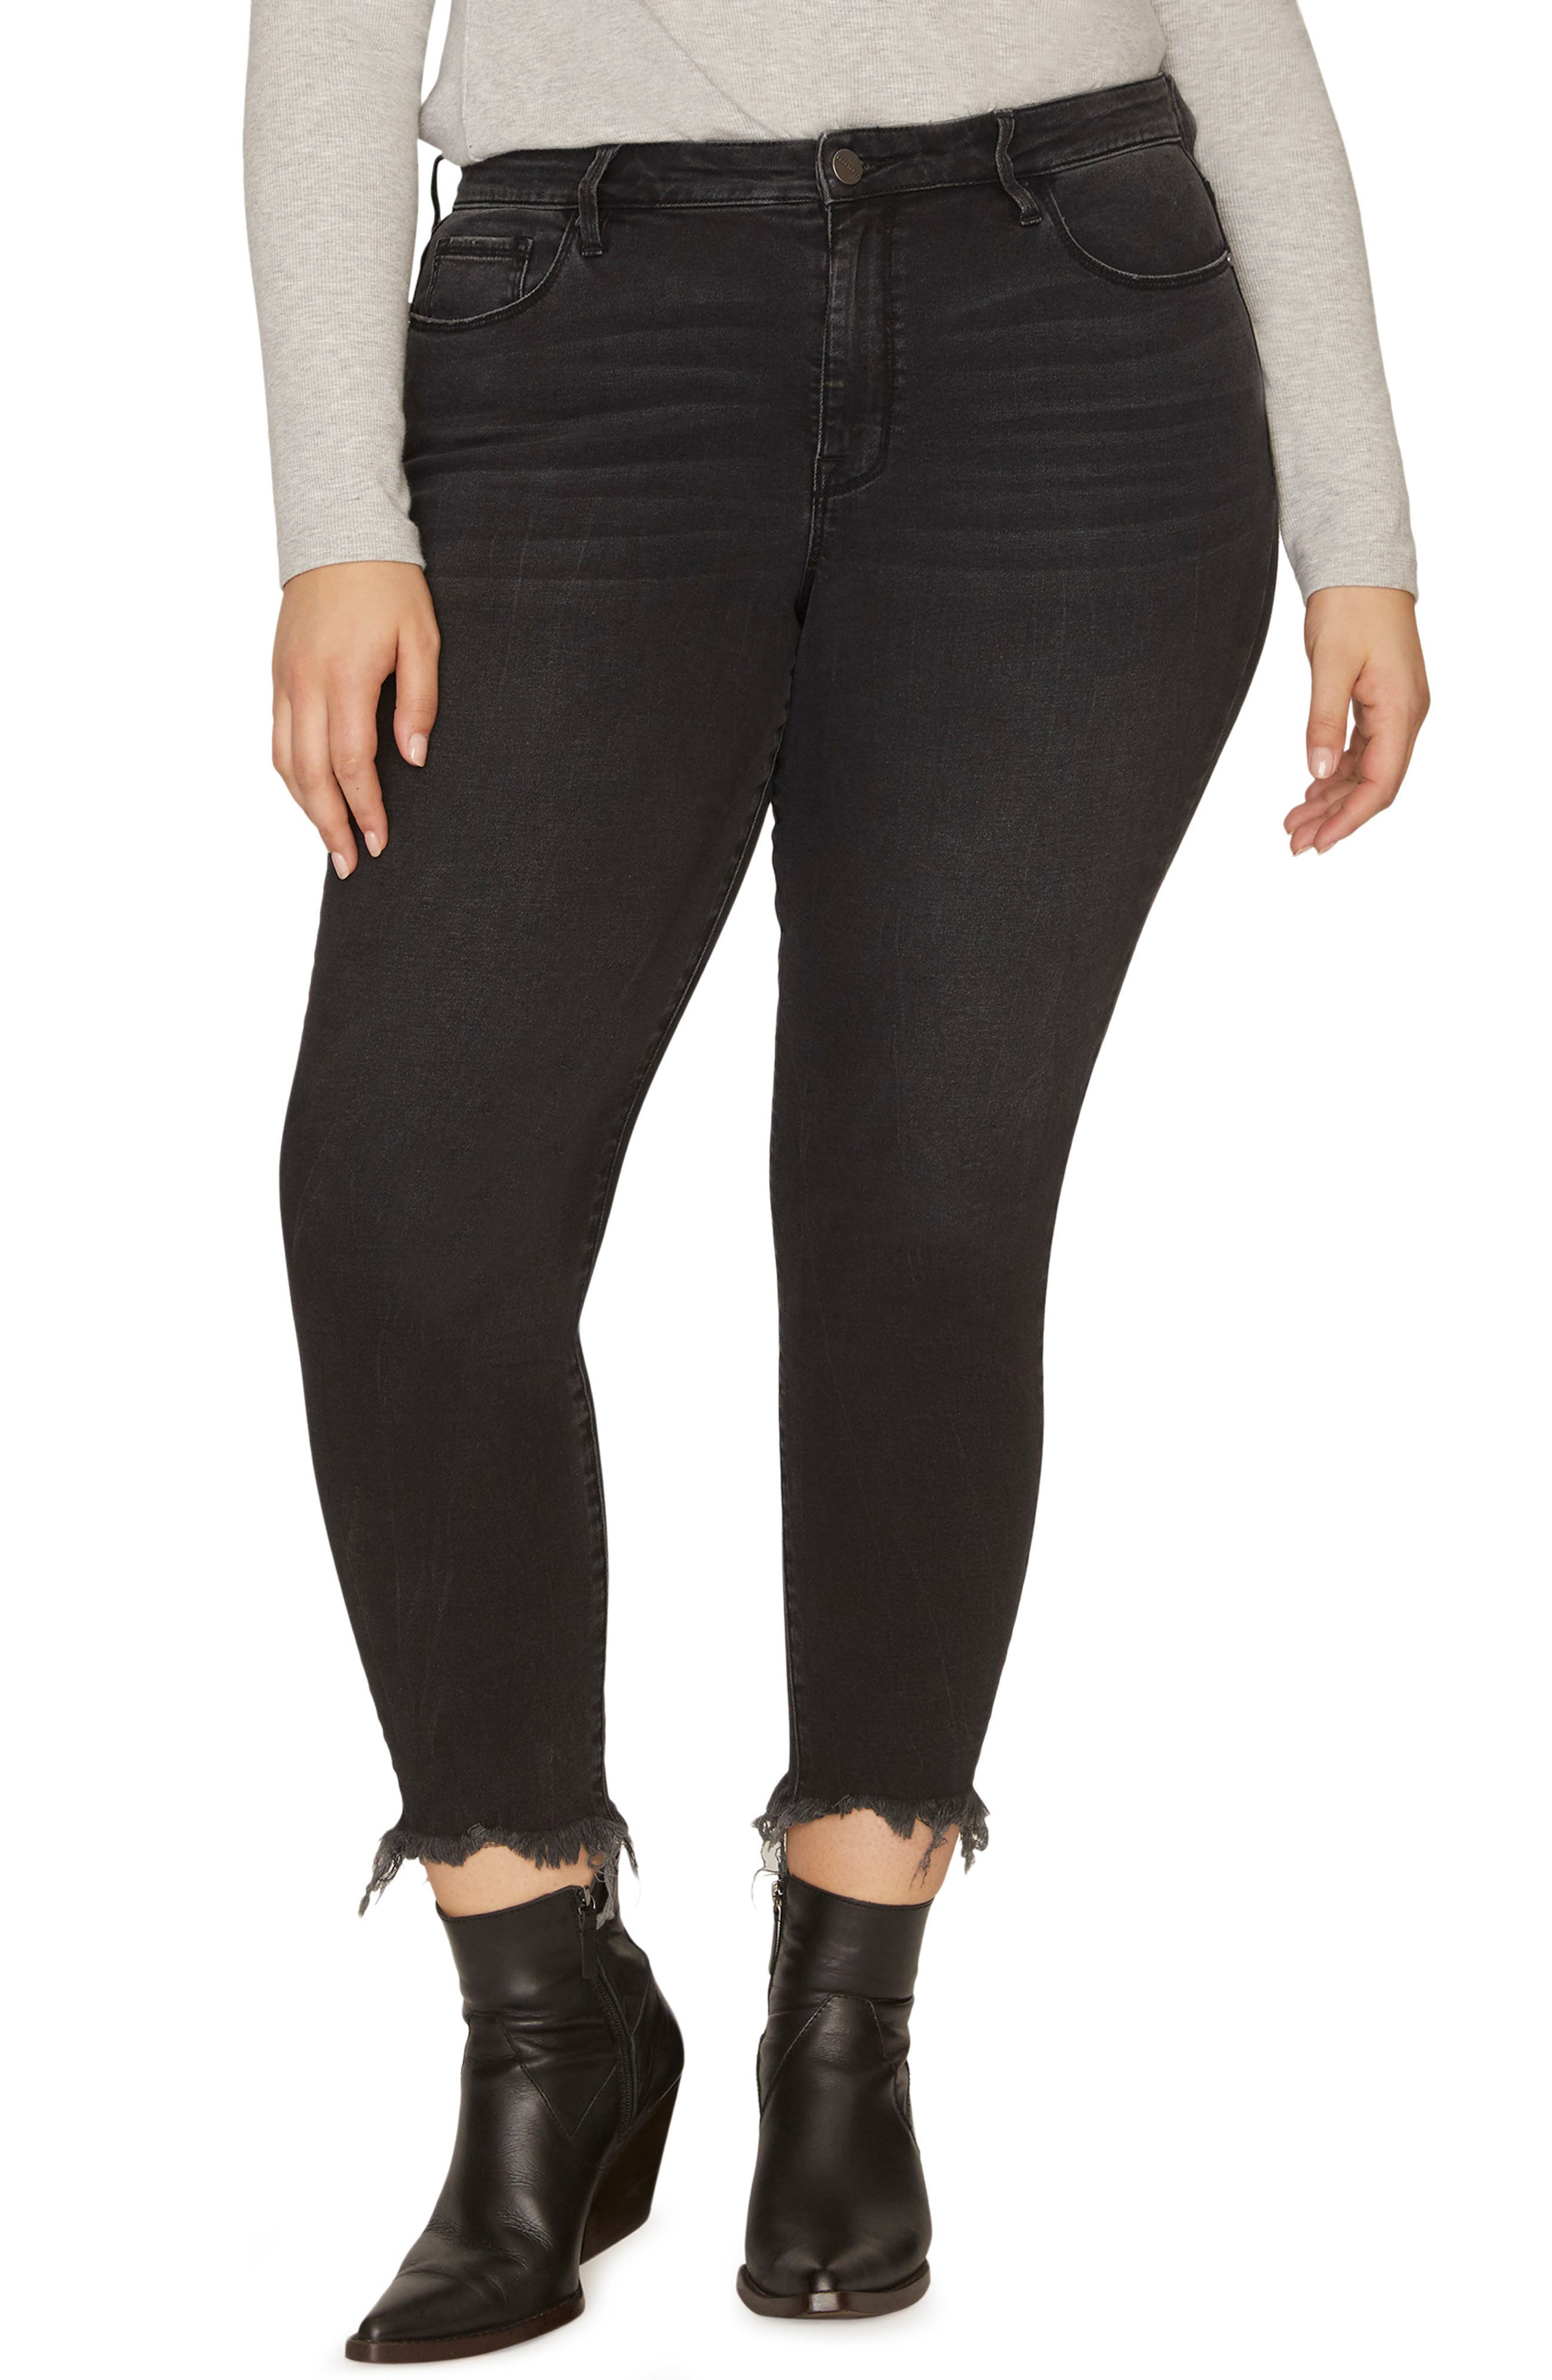 SANCTUARY, Social Standard High Rise Ankle Skinny Jeans, Main thumbnail 1, color, 001